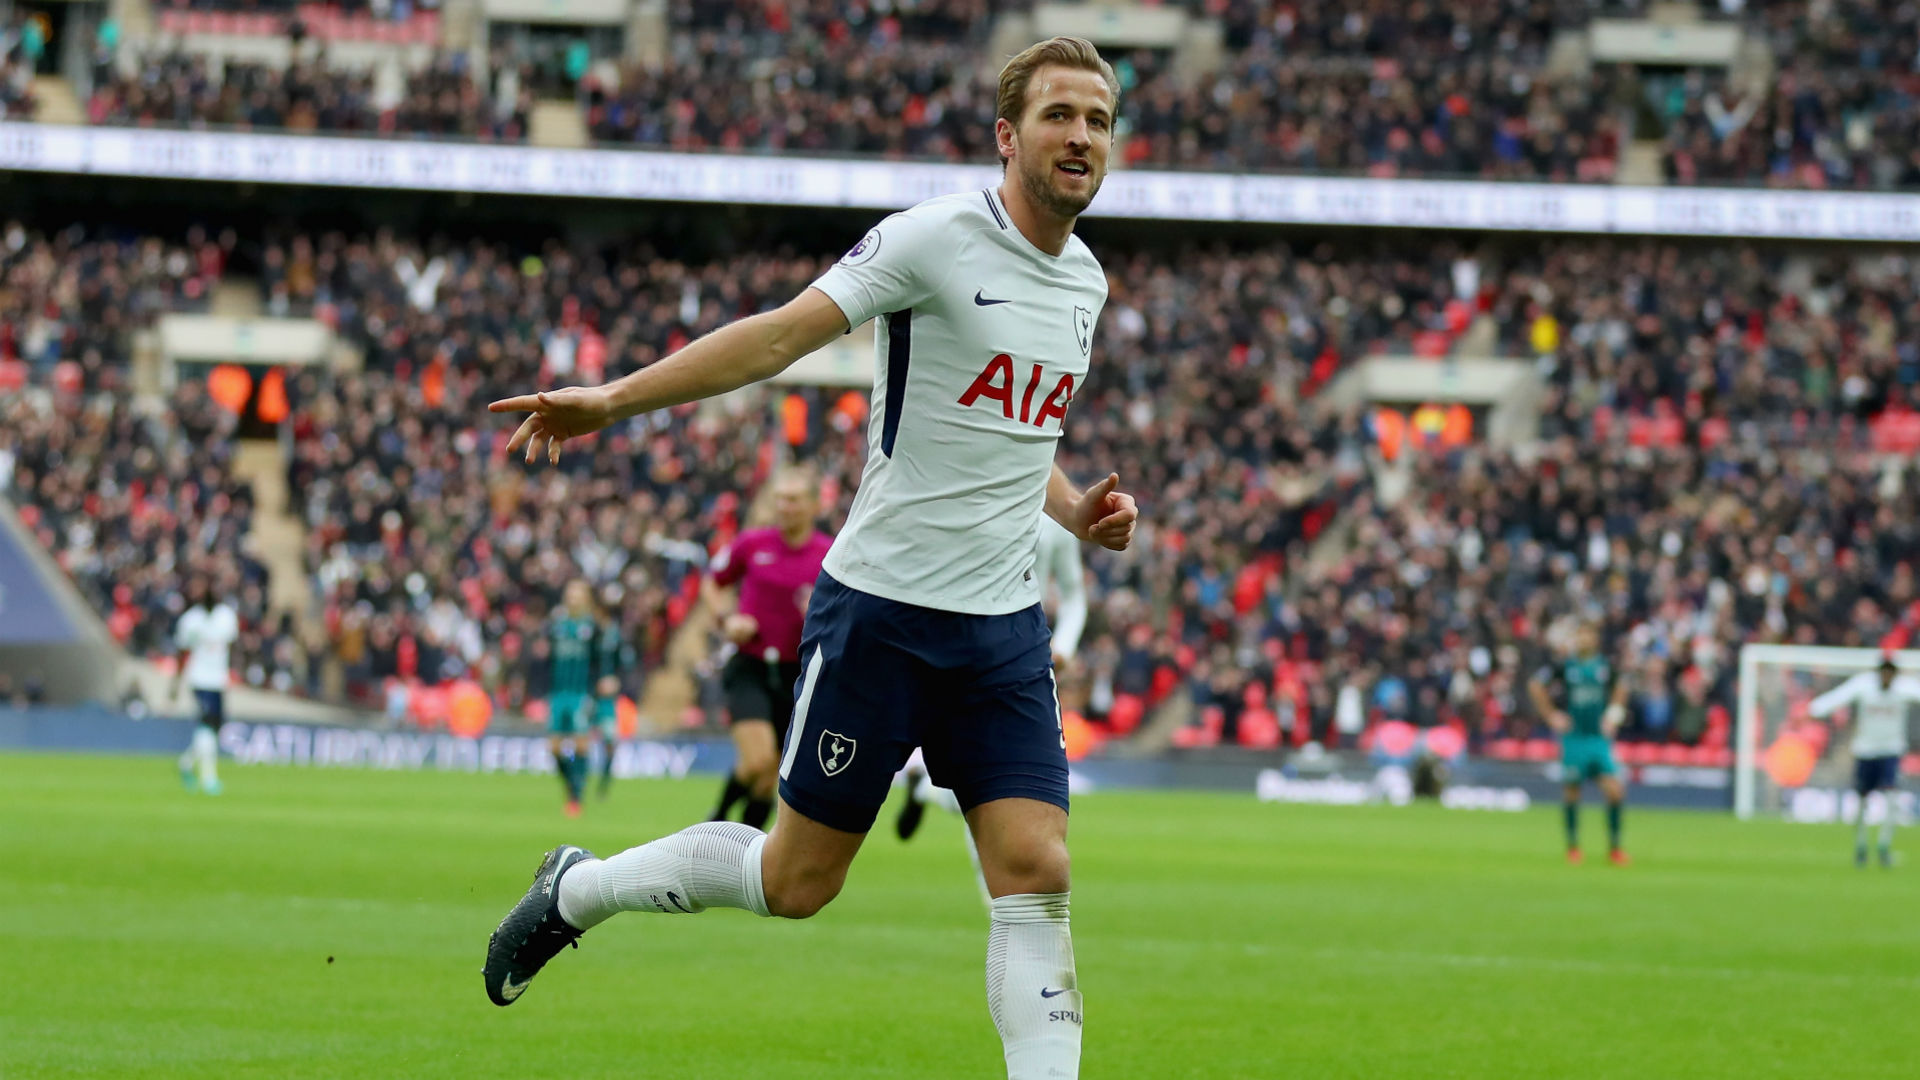 Tottenham 5 Southampton 2: Records tumble for inspirational hat-trick hero Kane